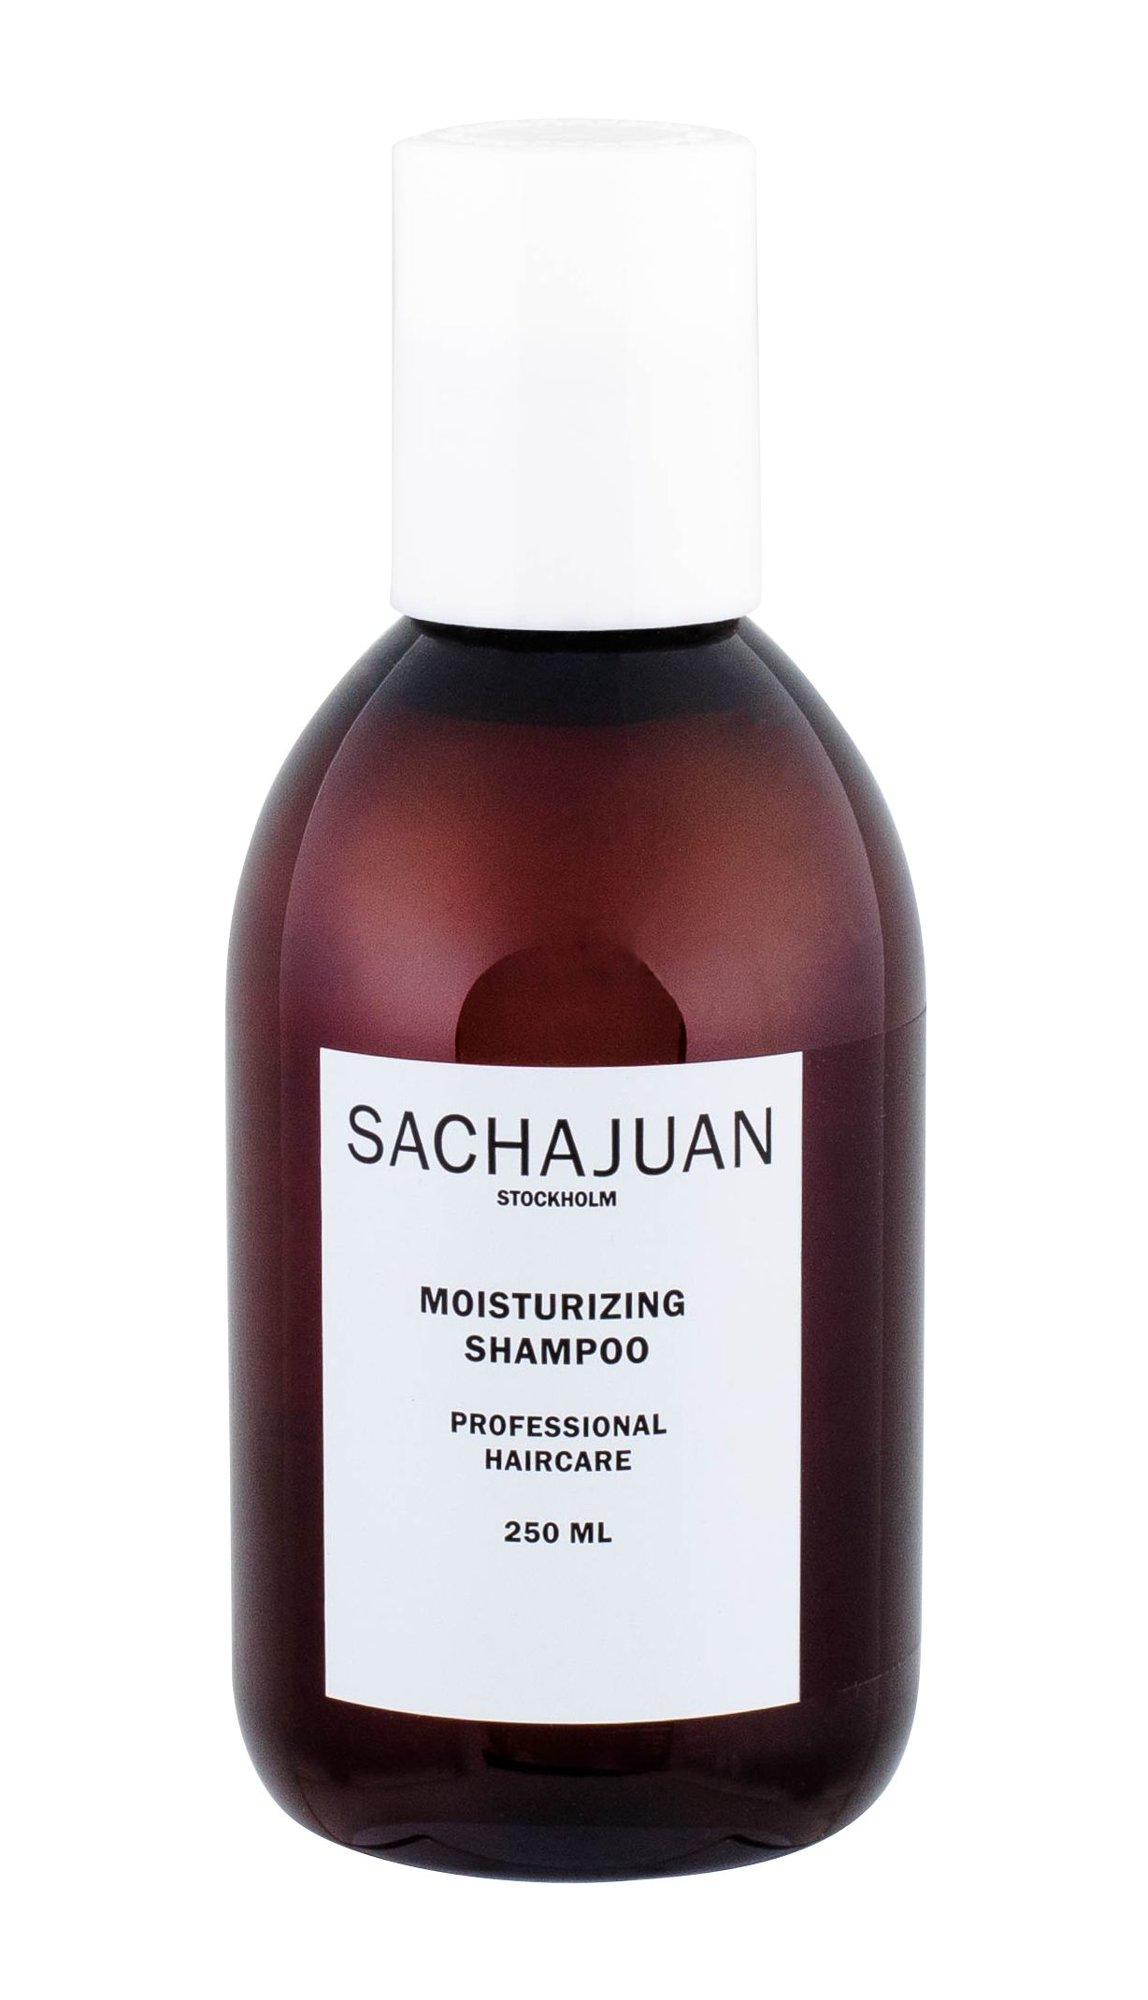 Sachajuan Cleanse & Care Shampoo 250ml